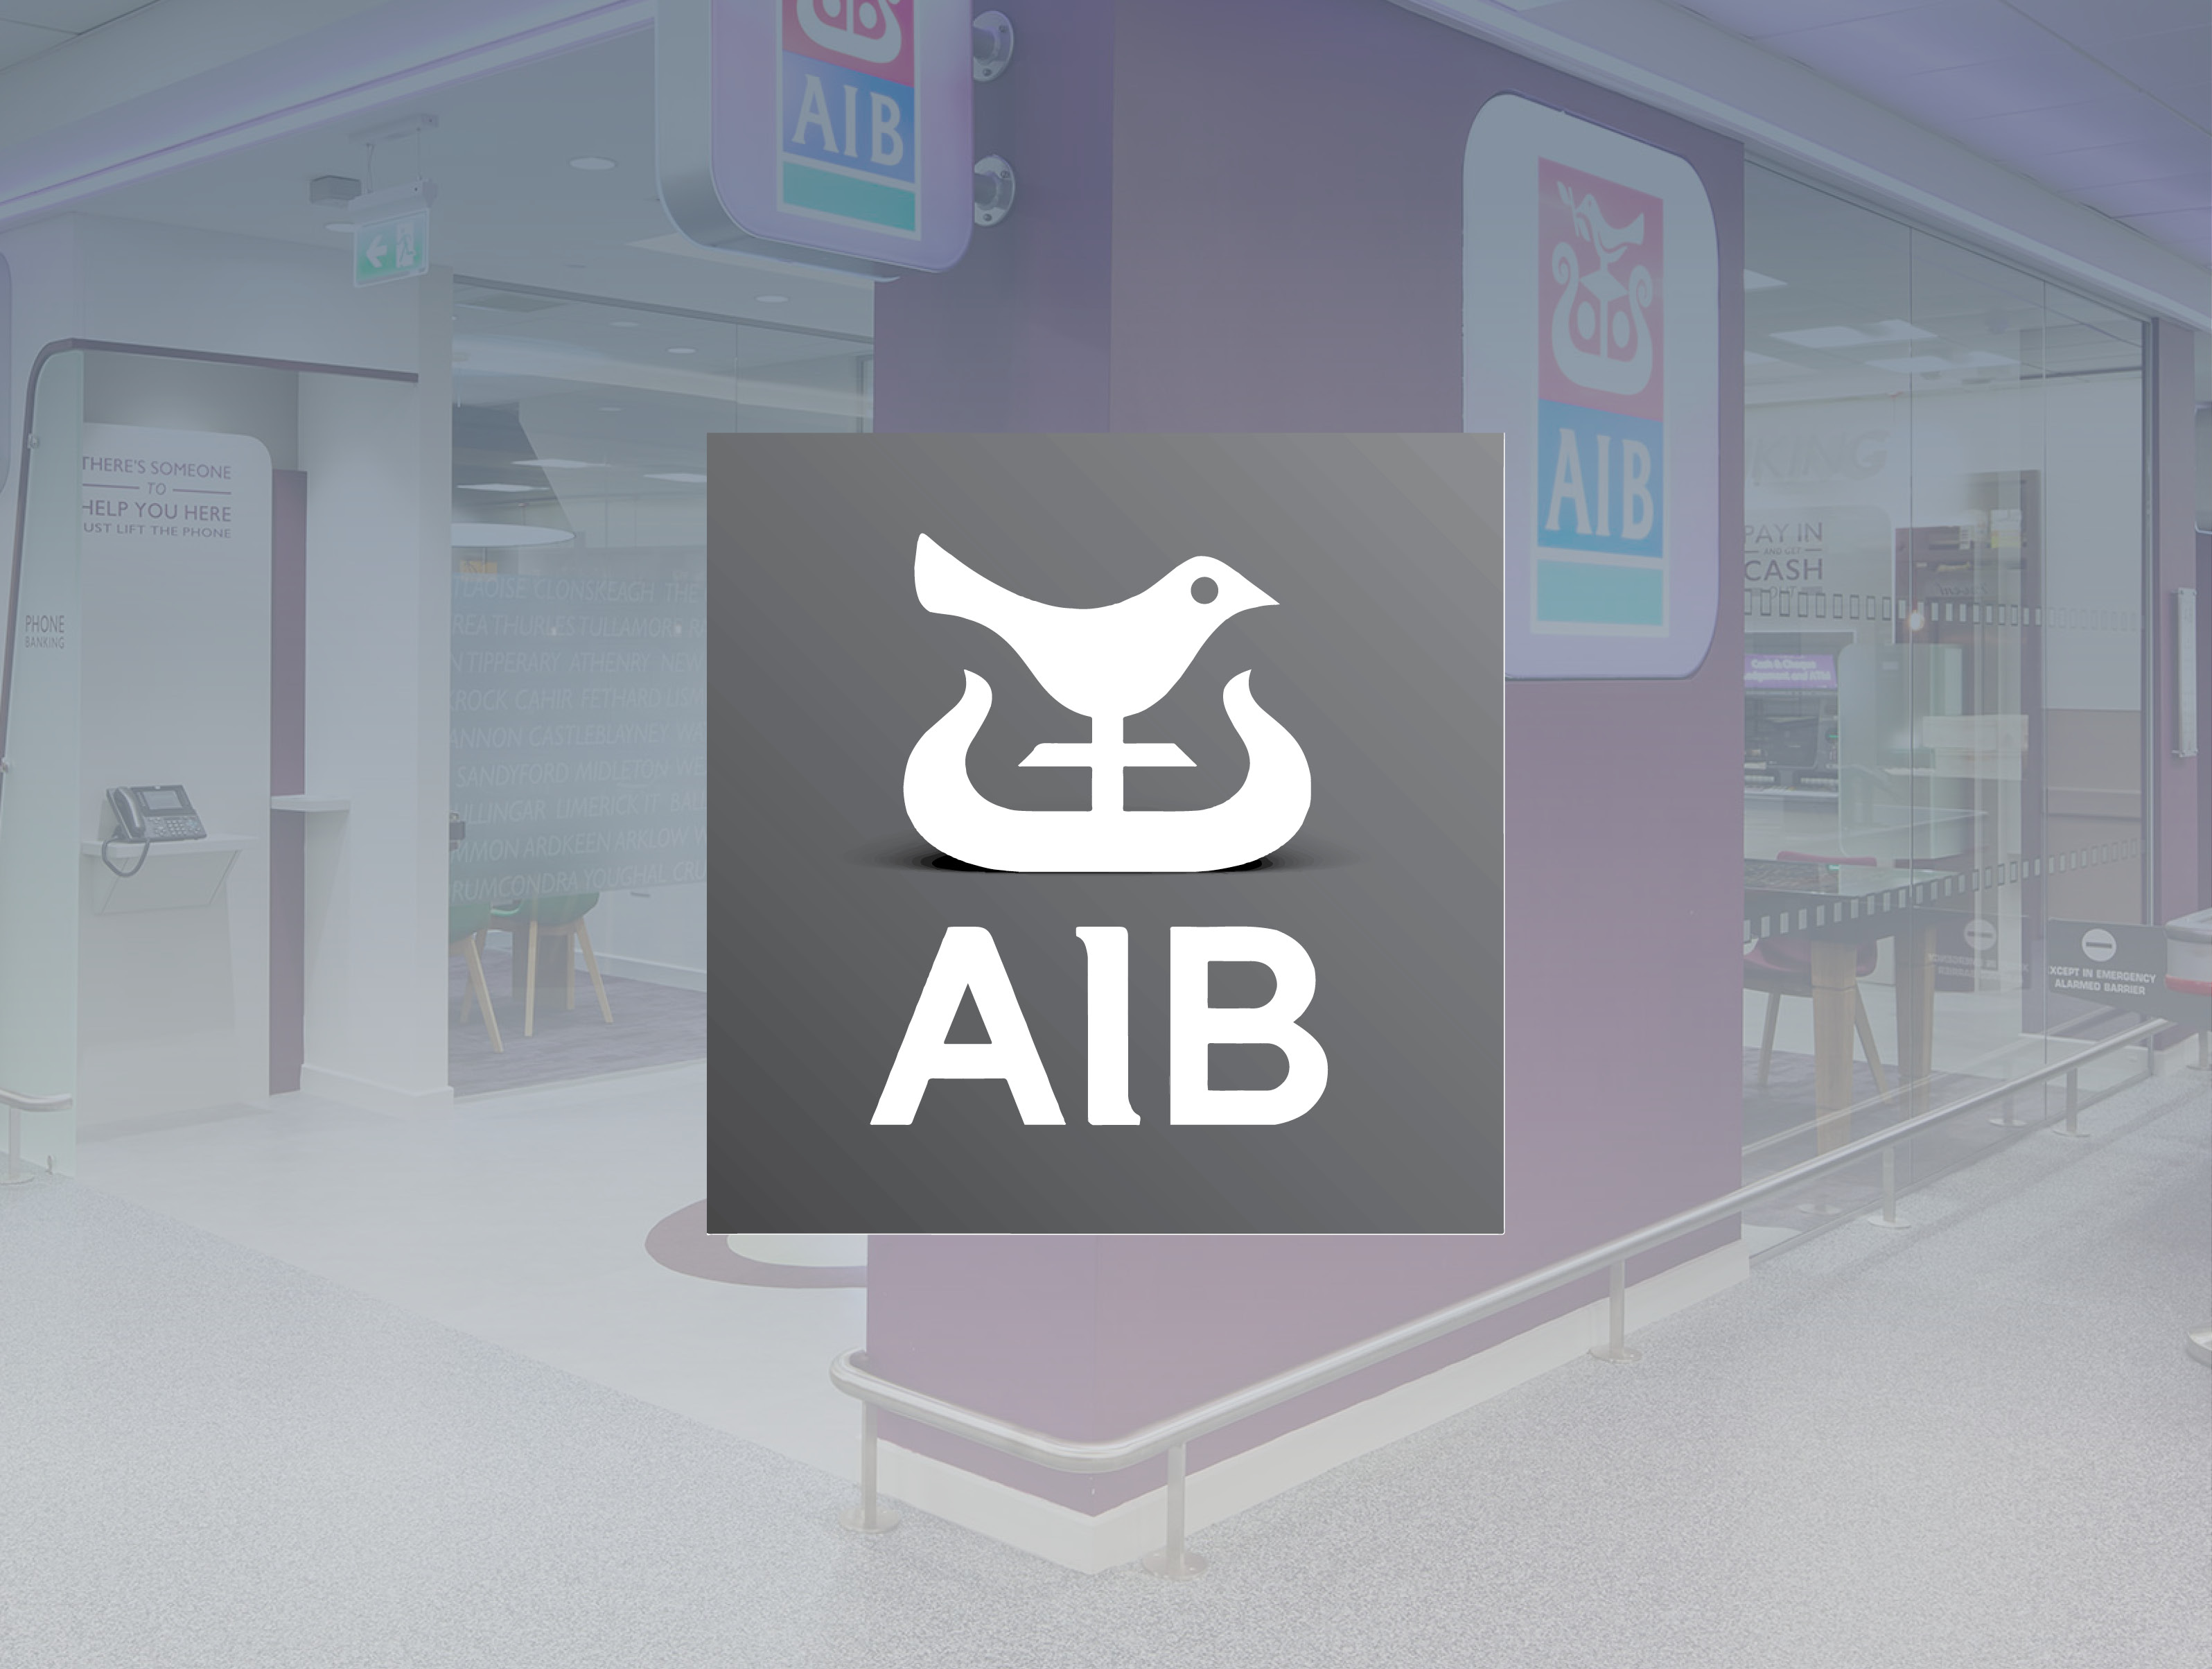 AIB-Customer Pages